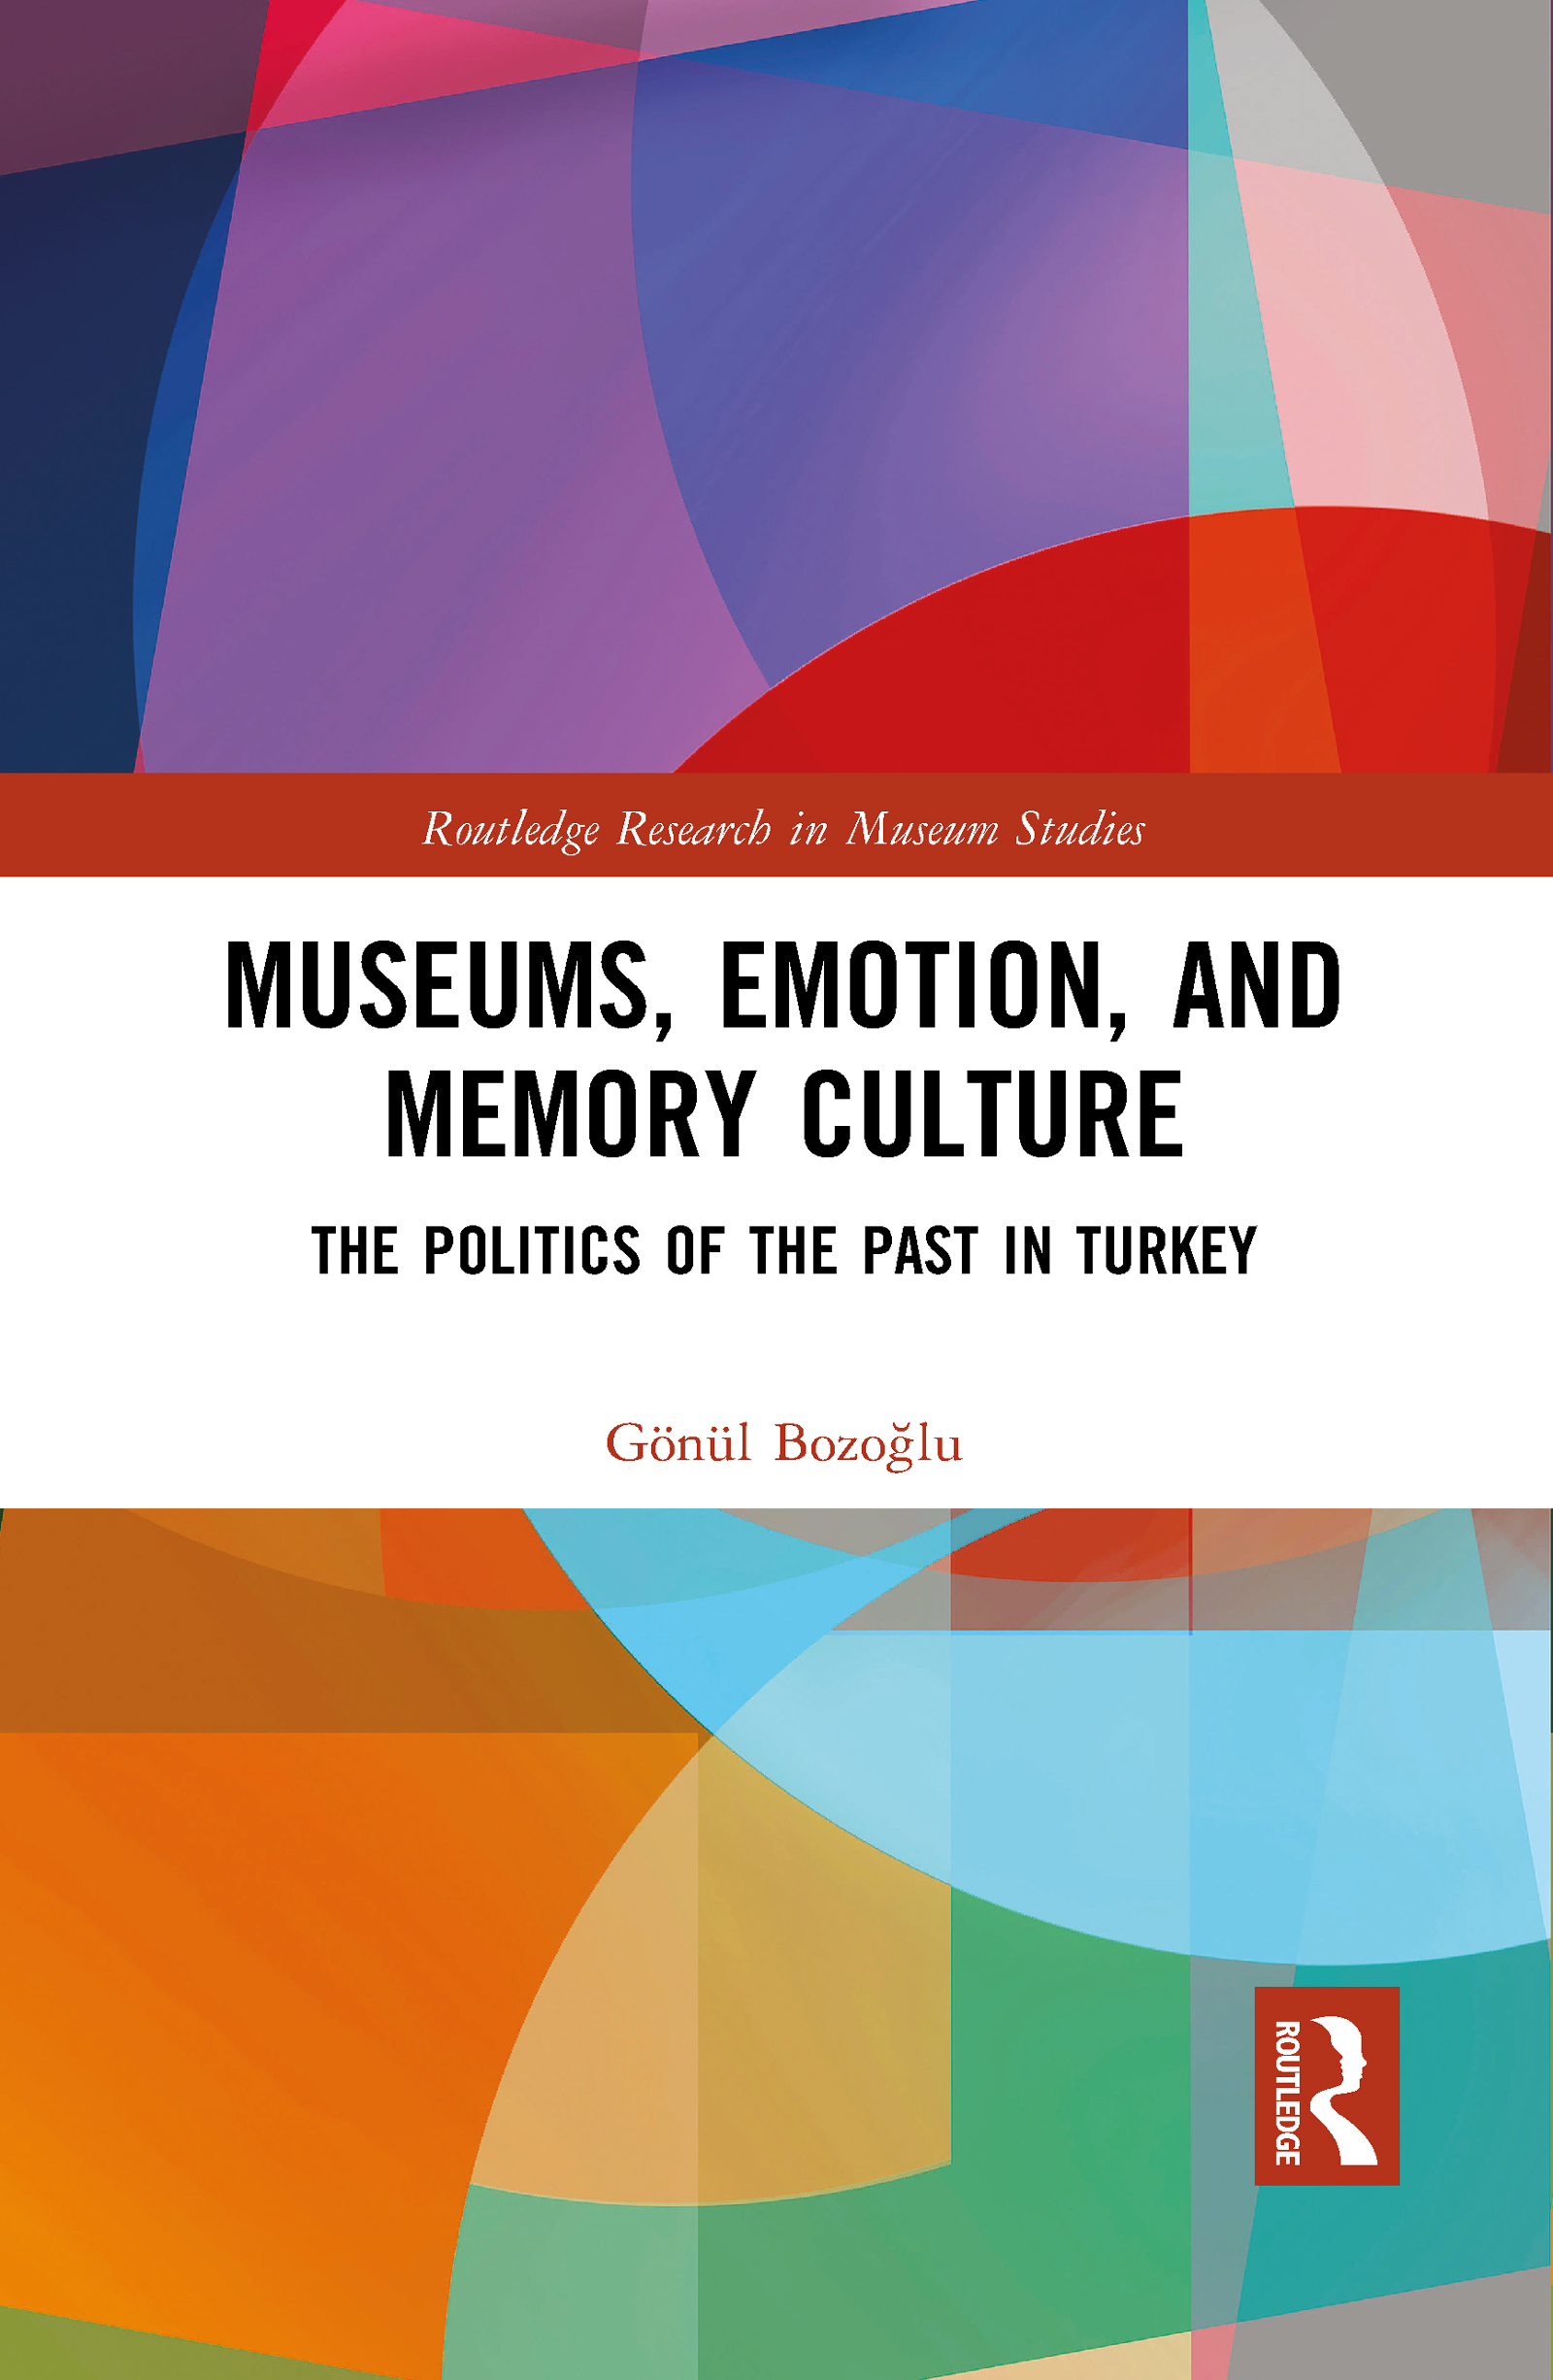 Museums, Emotion, and Memory Culture